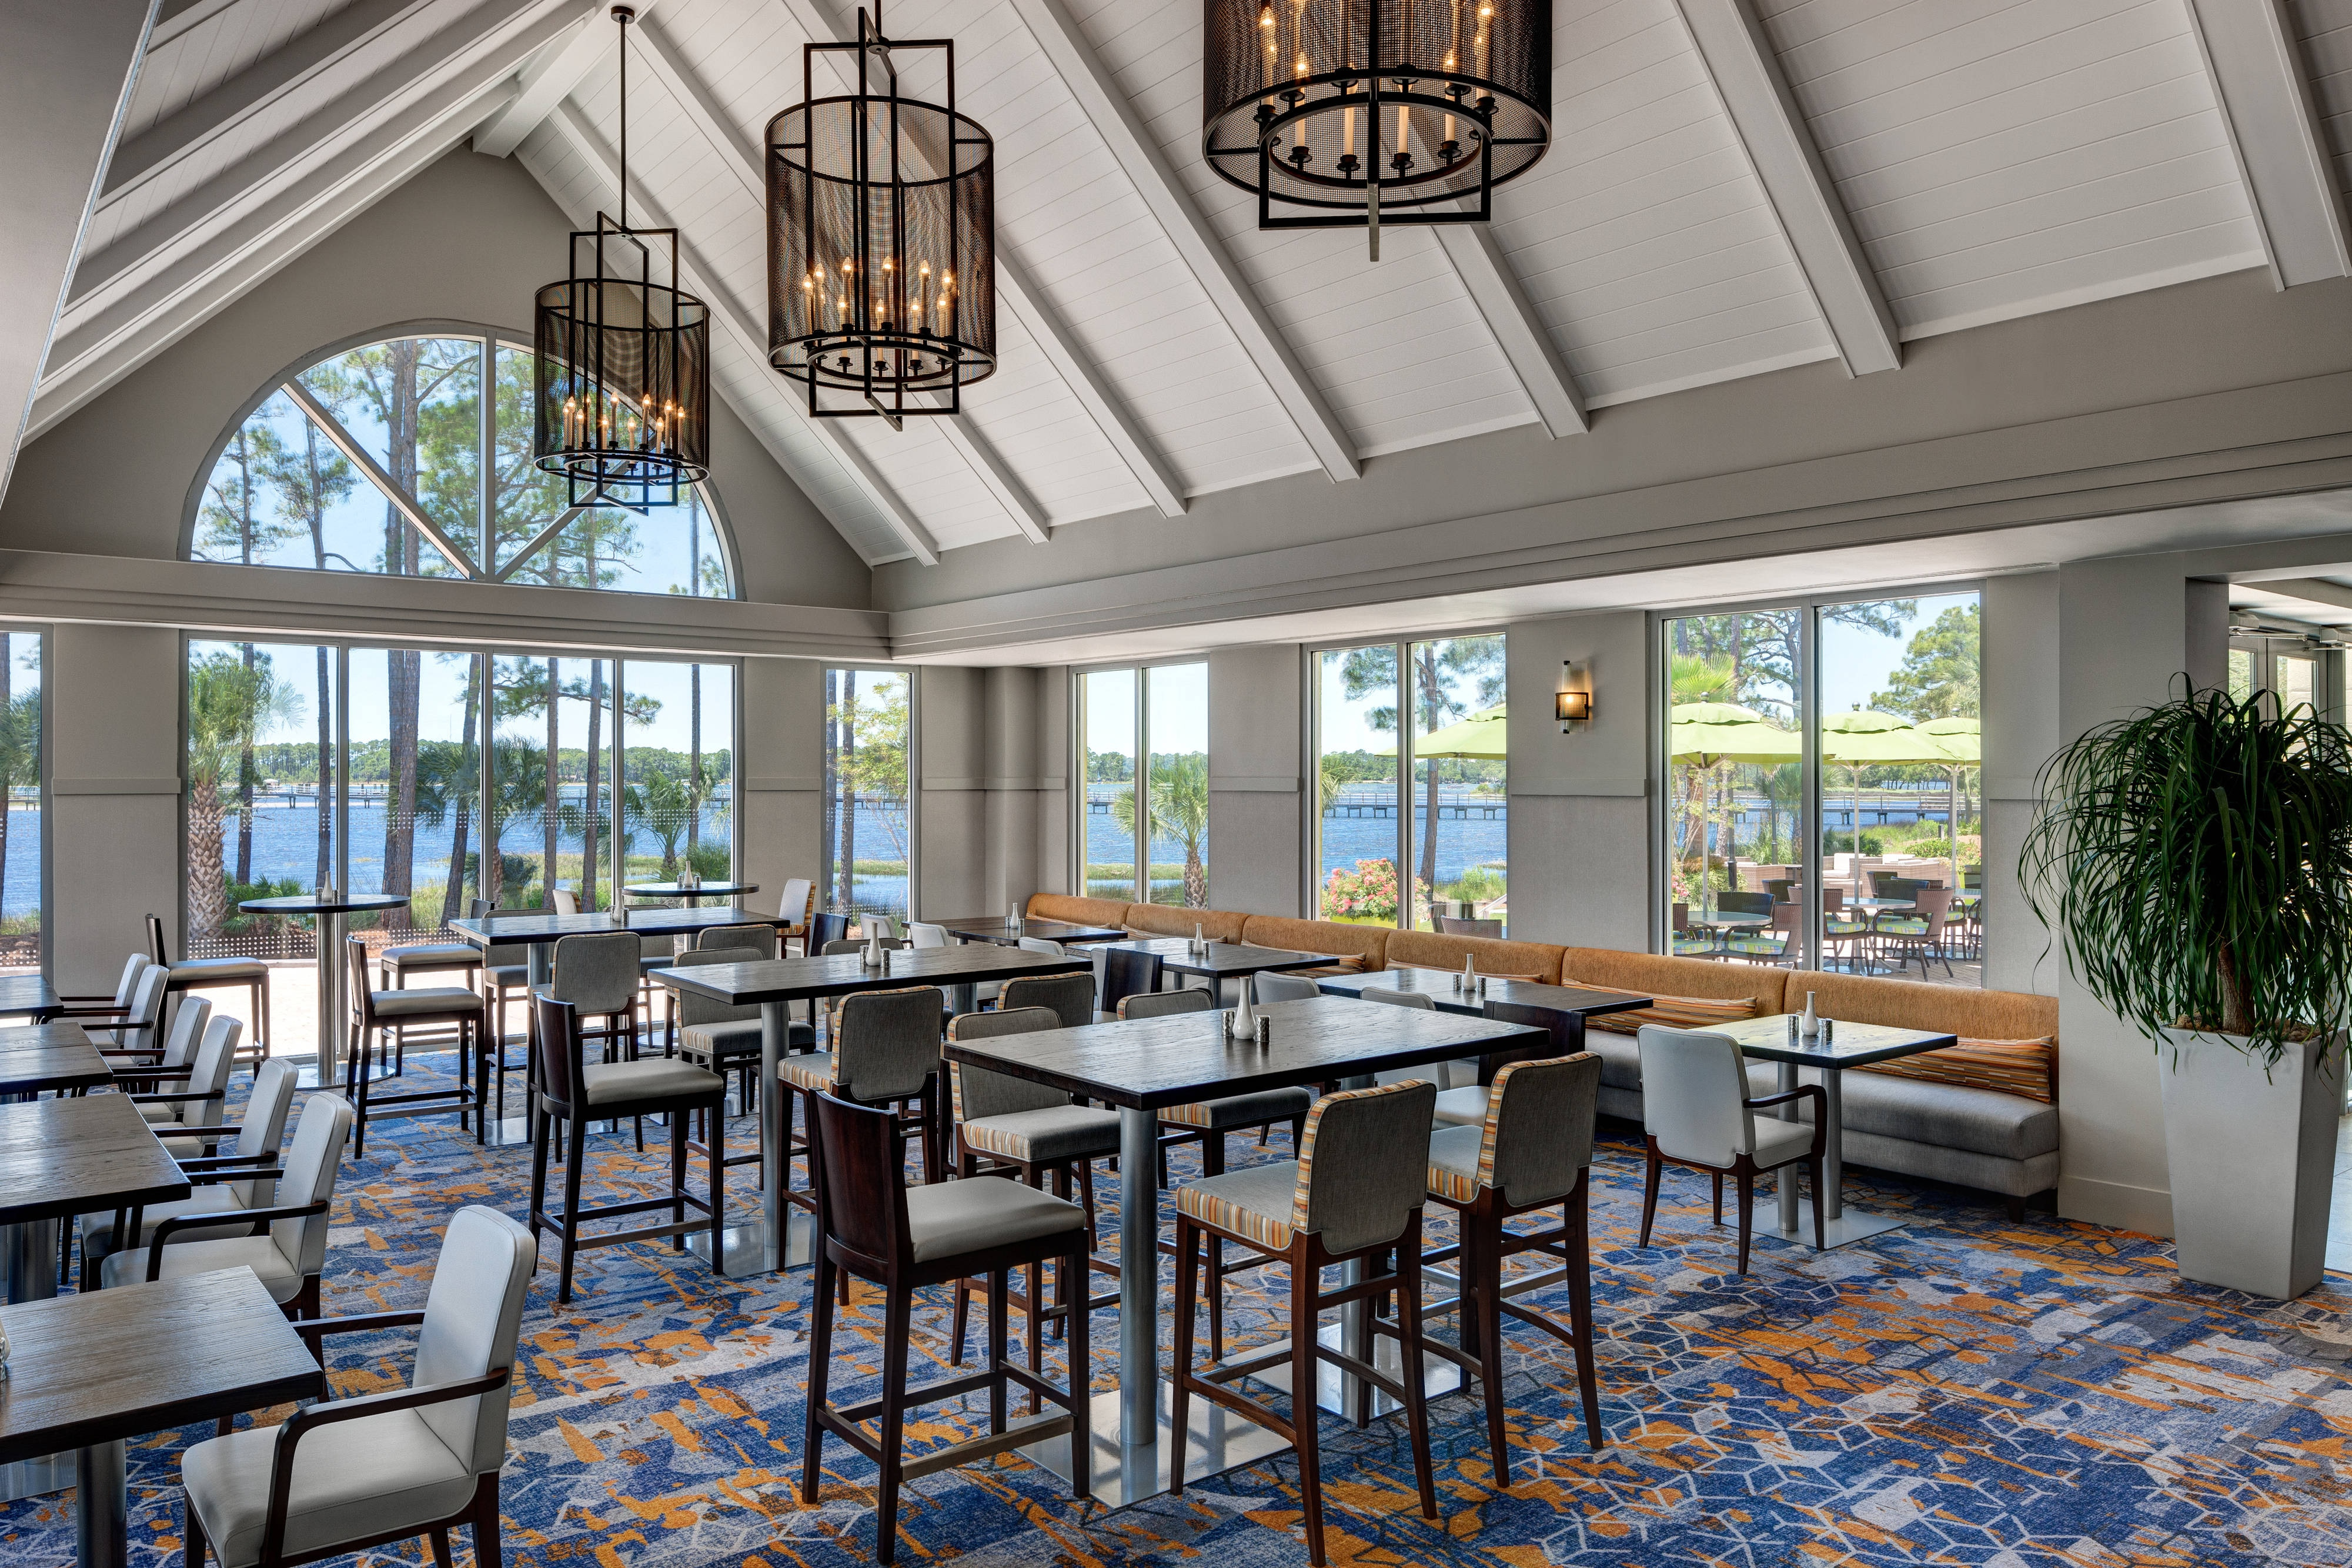 TIDES Restaurant and terrace